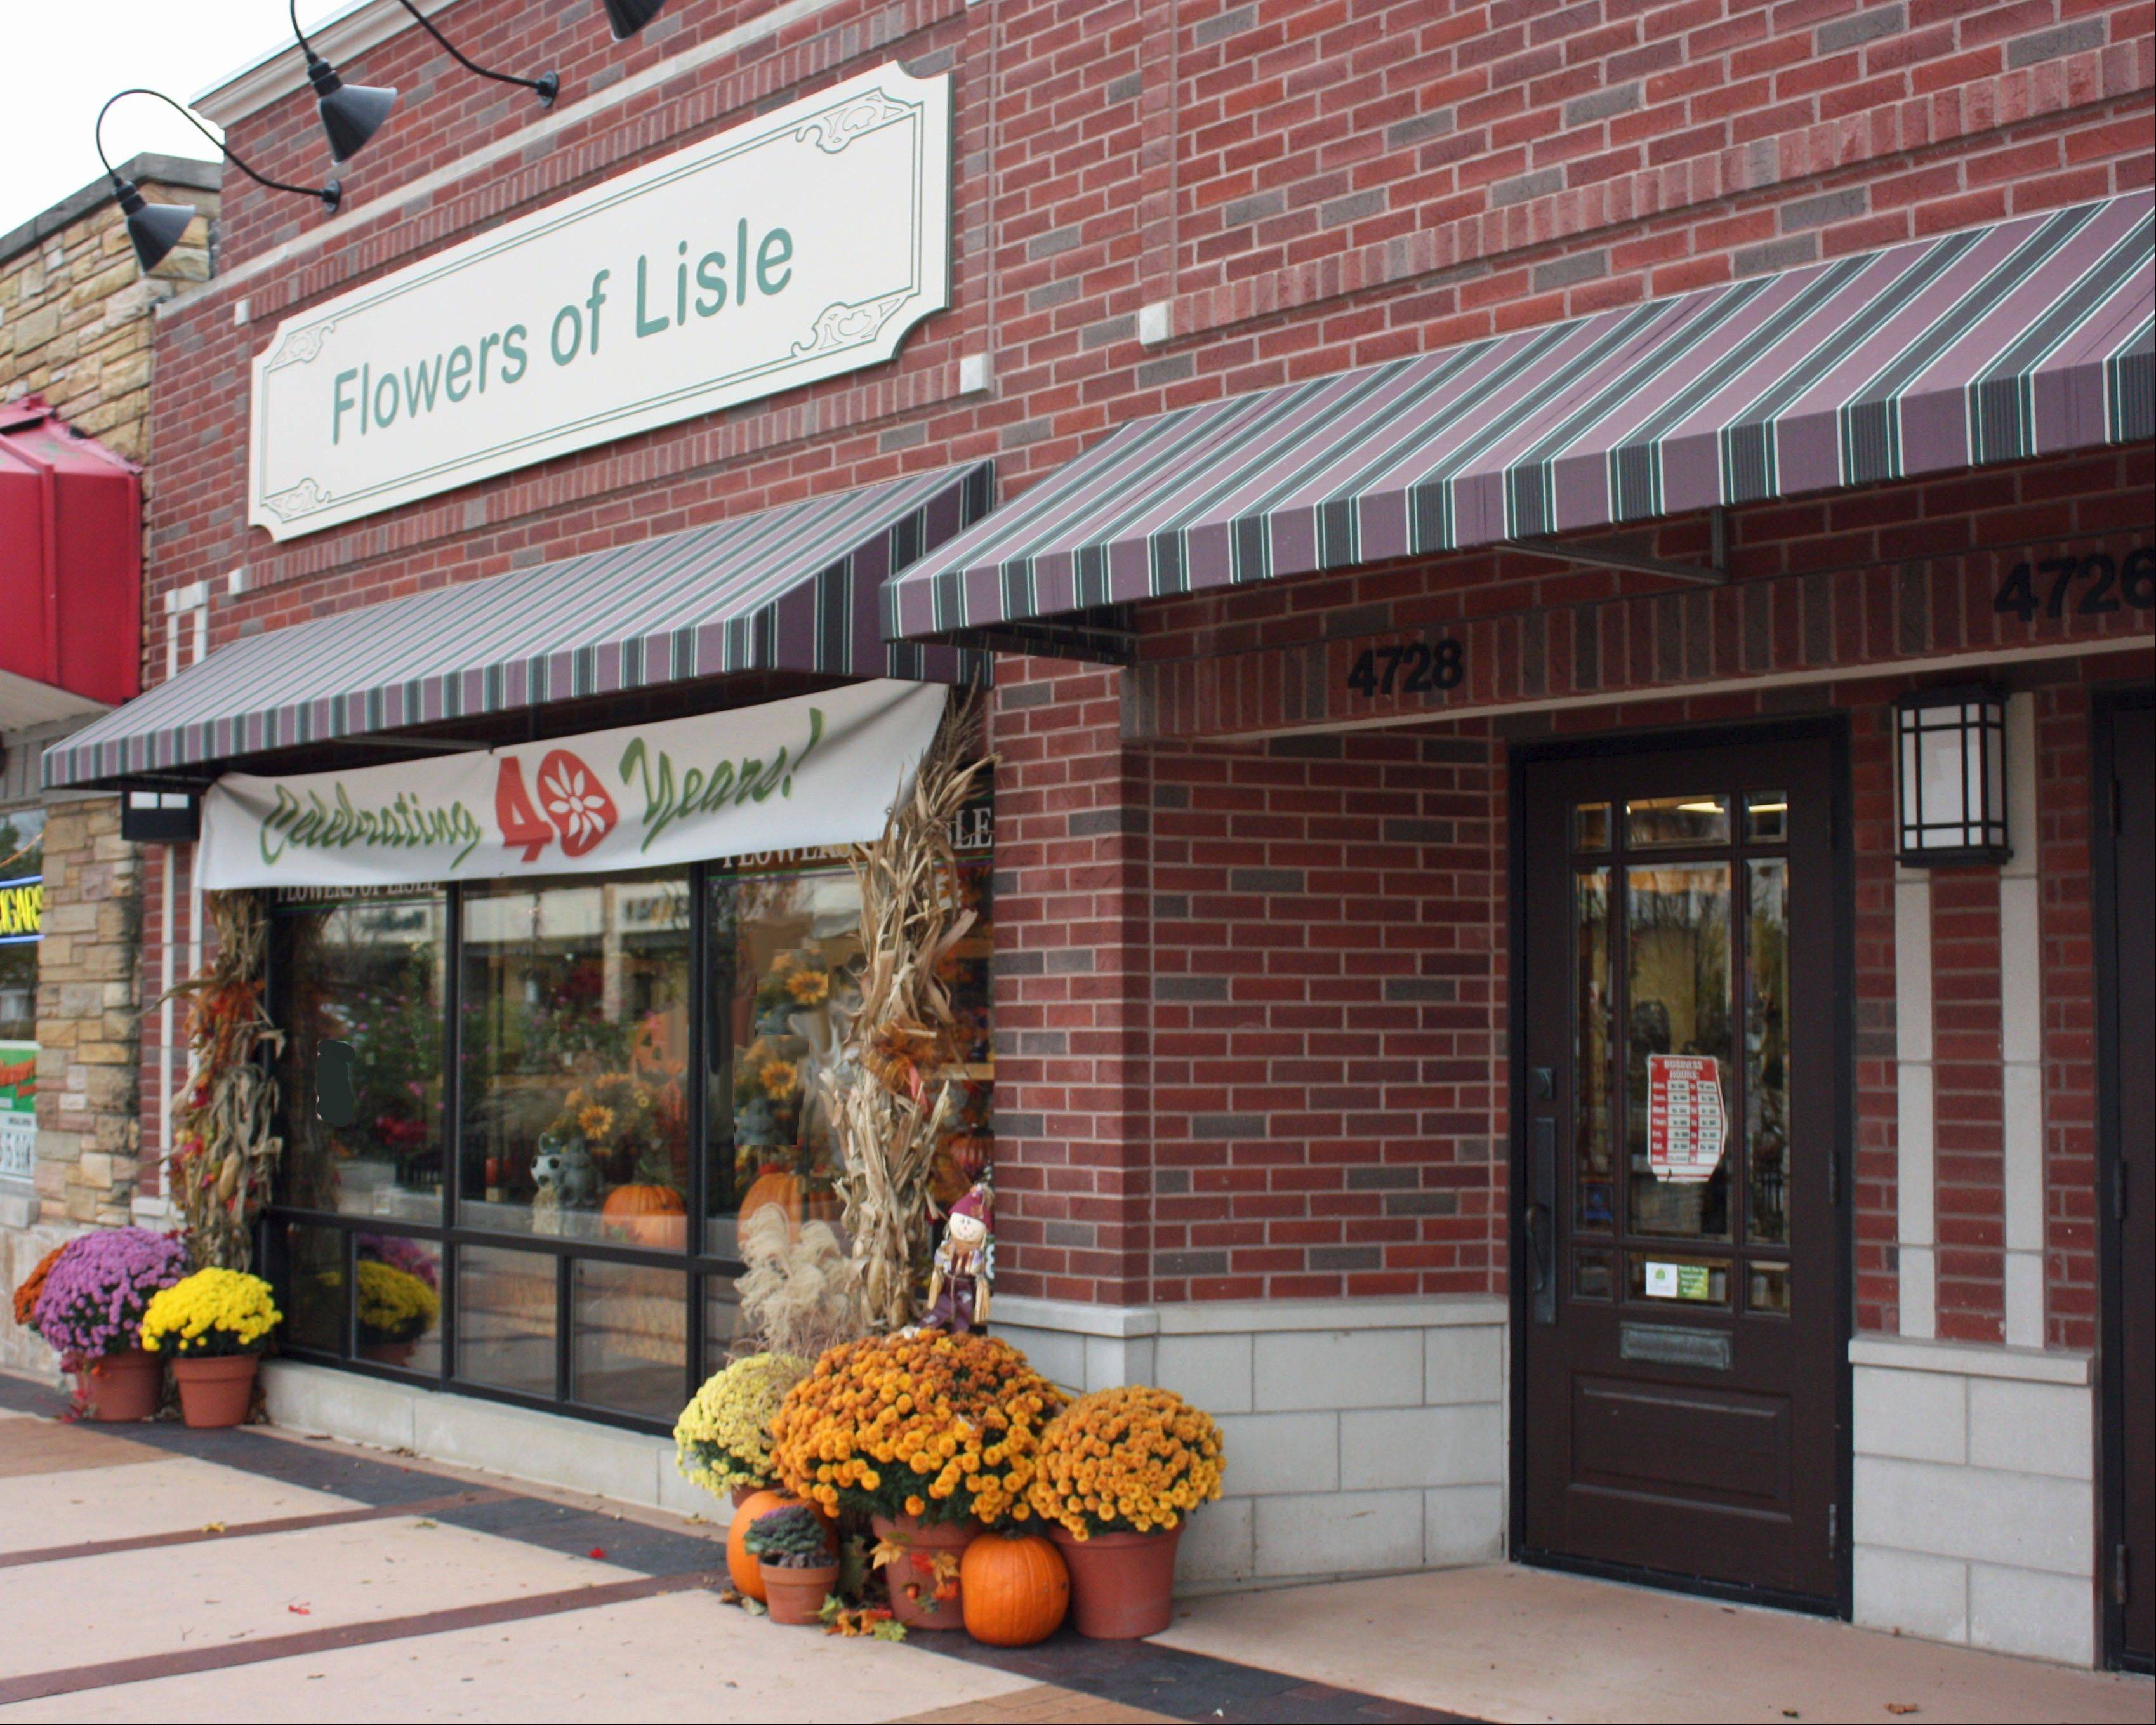 The facade of Flowers of Lisle has changed over the years, but it's been a mainstay of Main Street for 40 years.